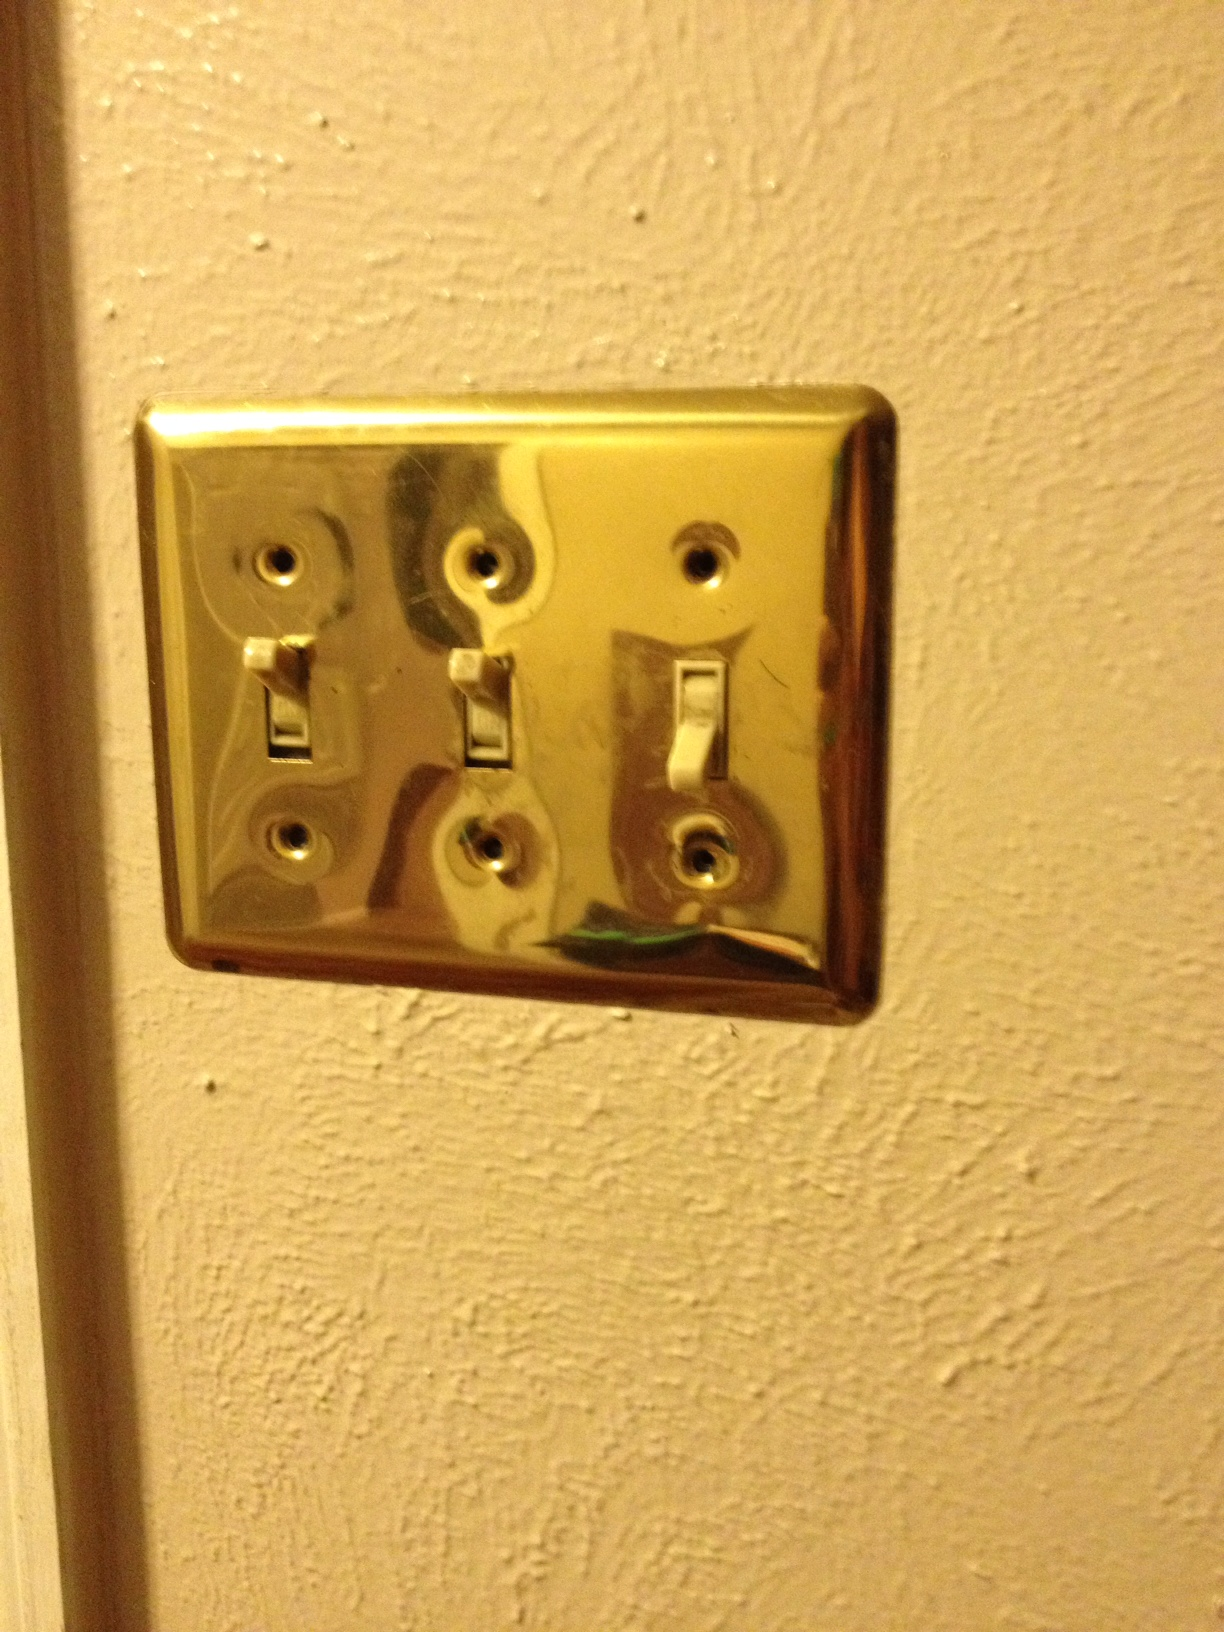 Brass Light Switch Covers Enchanting Spray Painting Light Switch Covers  The Creativity In The Chaos Design Ideas